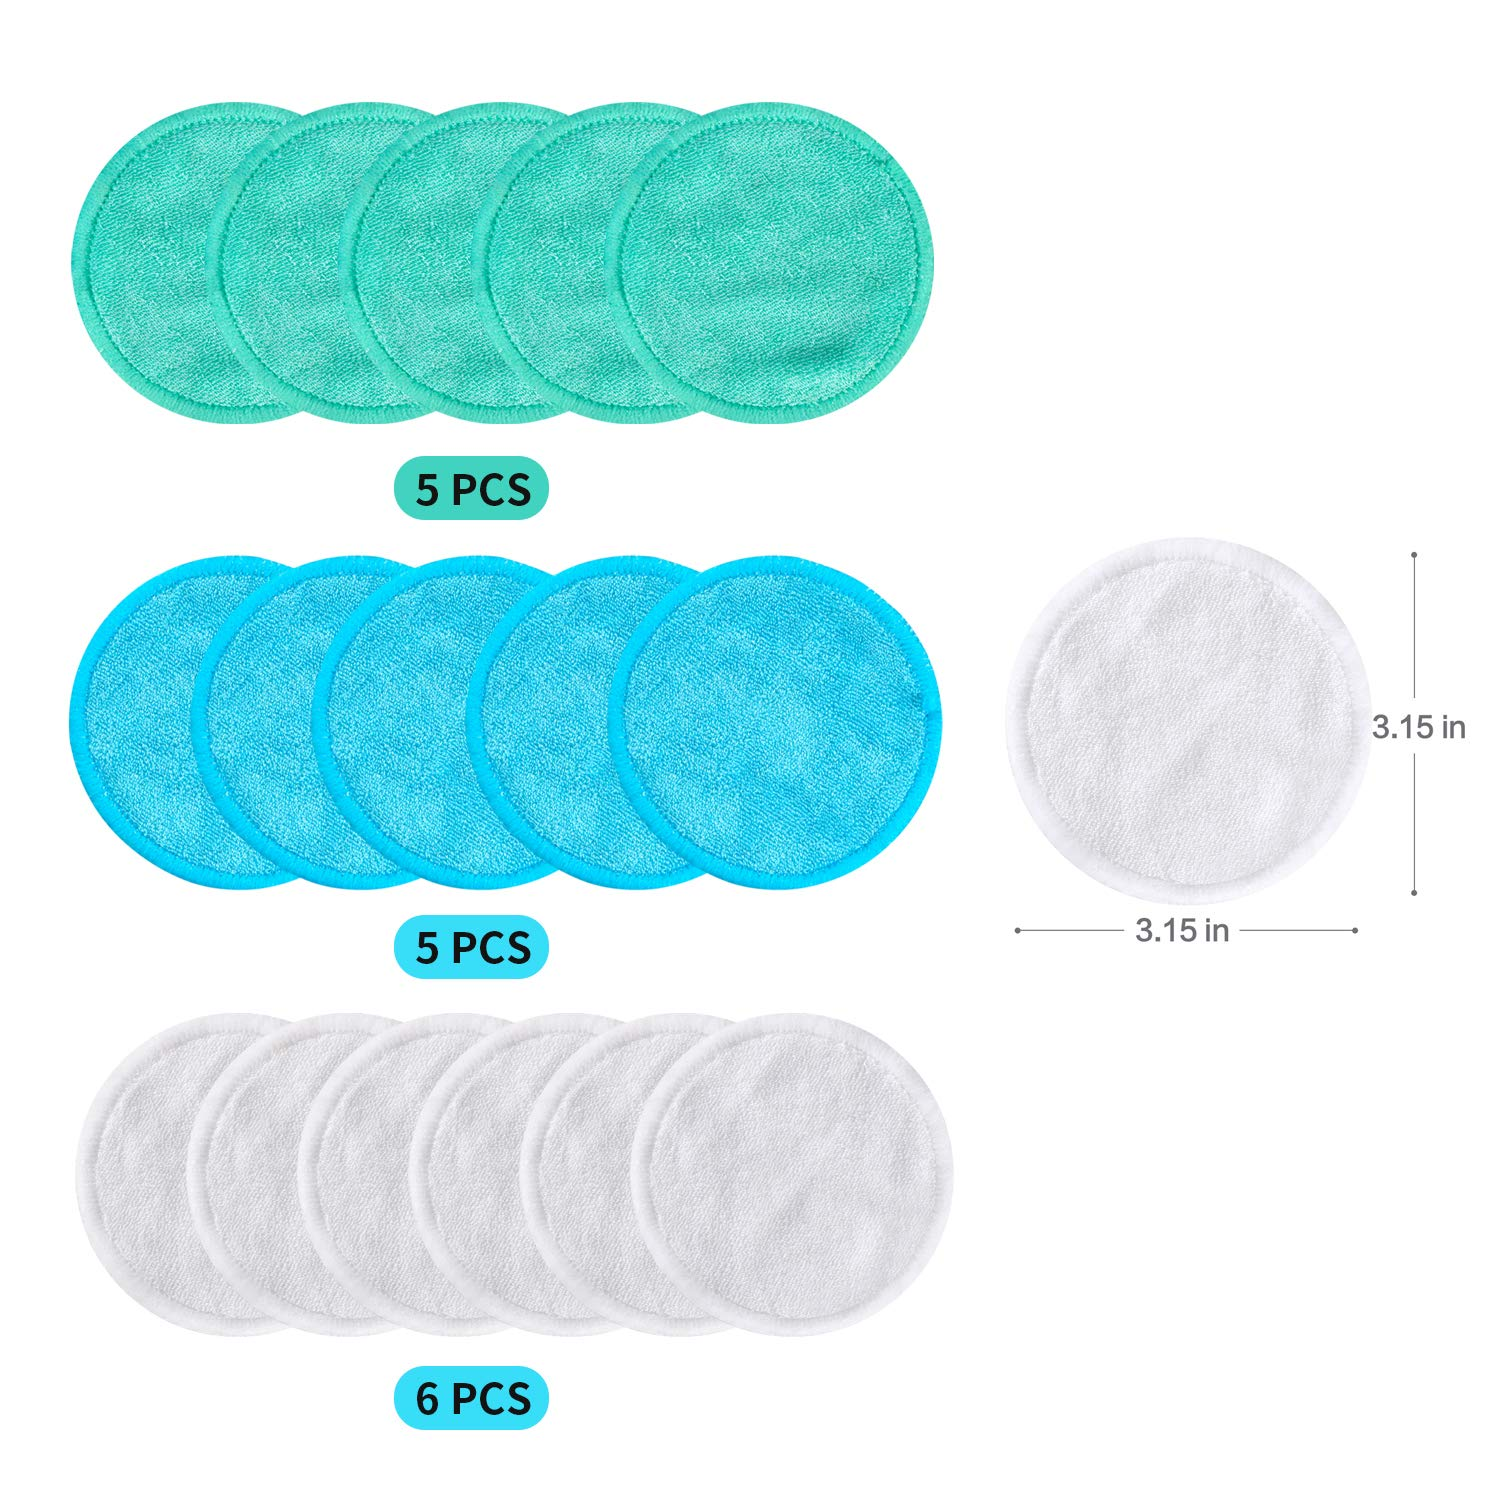 Makeup Remover Pads Reusable 16 Packs Bamboo Facial Toner Pads Cleansing Wipe Cloth Chemical Free With Laundry Bag, ProCIV Washable Clean Skin Care Round Pads Cleansing Towel Wipes 3 Color (3.15 inch) by ProCIV (Image #6)